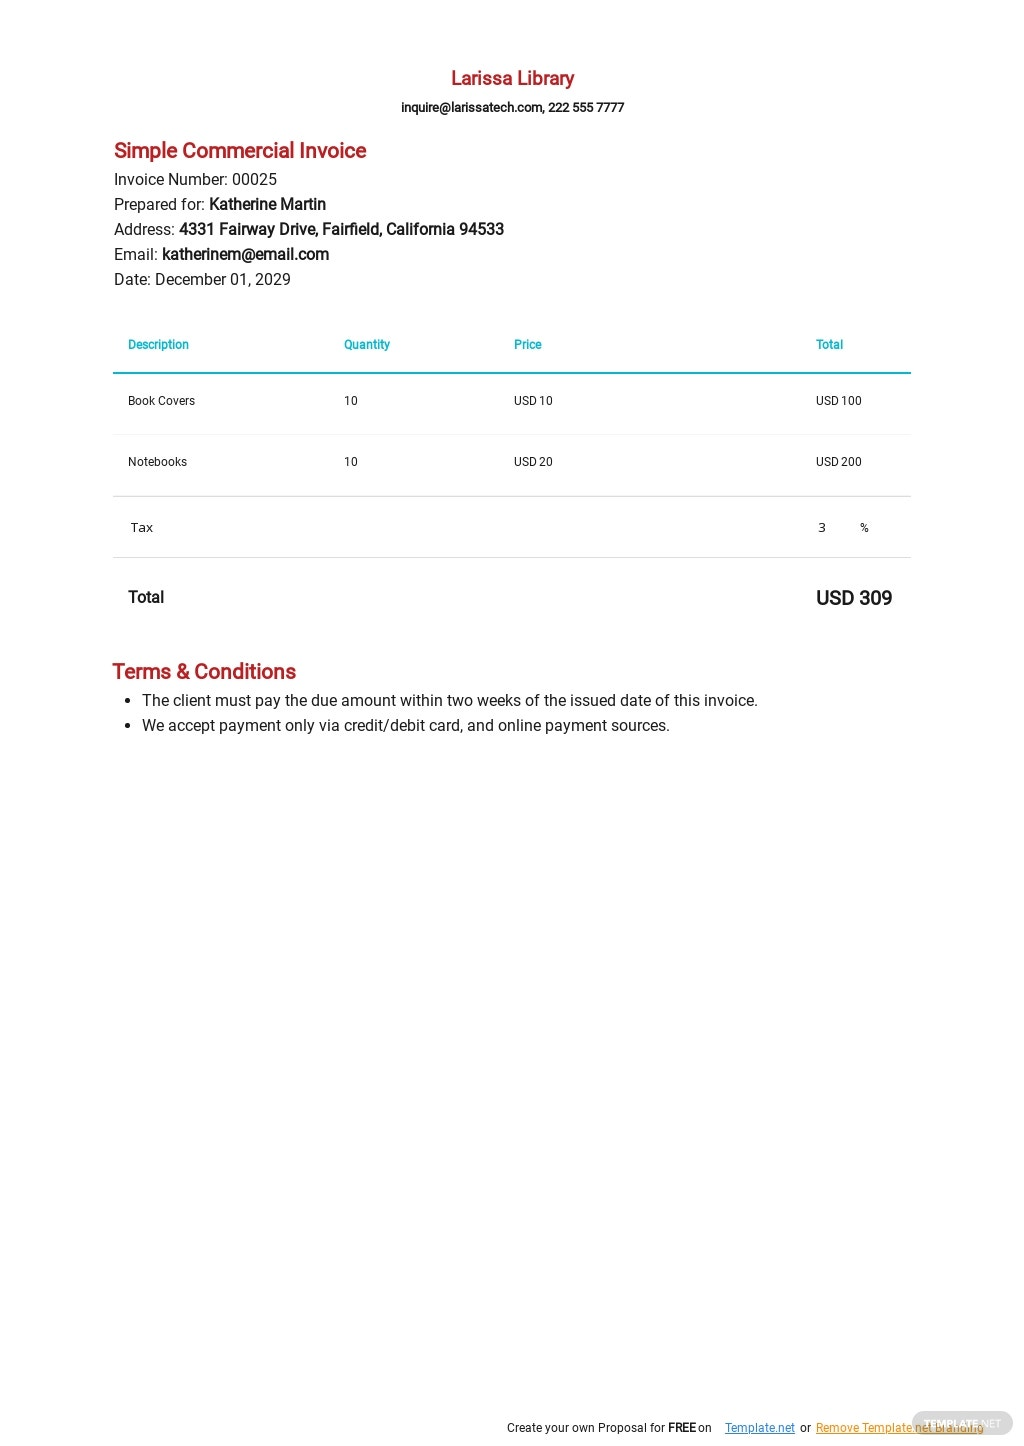 Simple Commercial Invoice Template.jpe